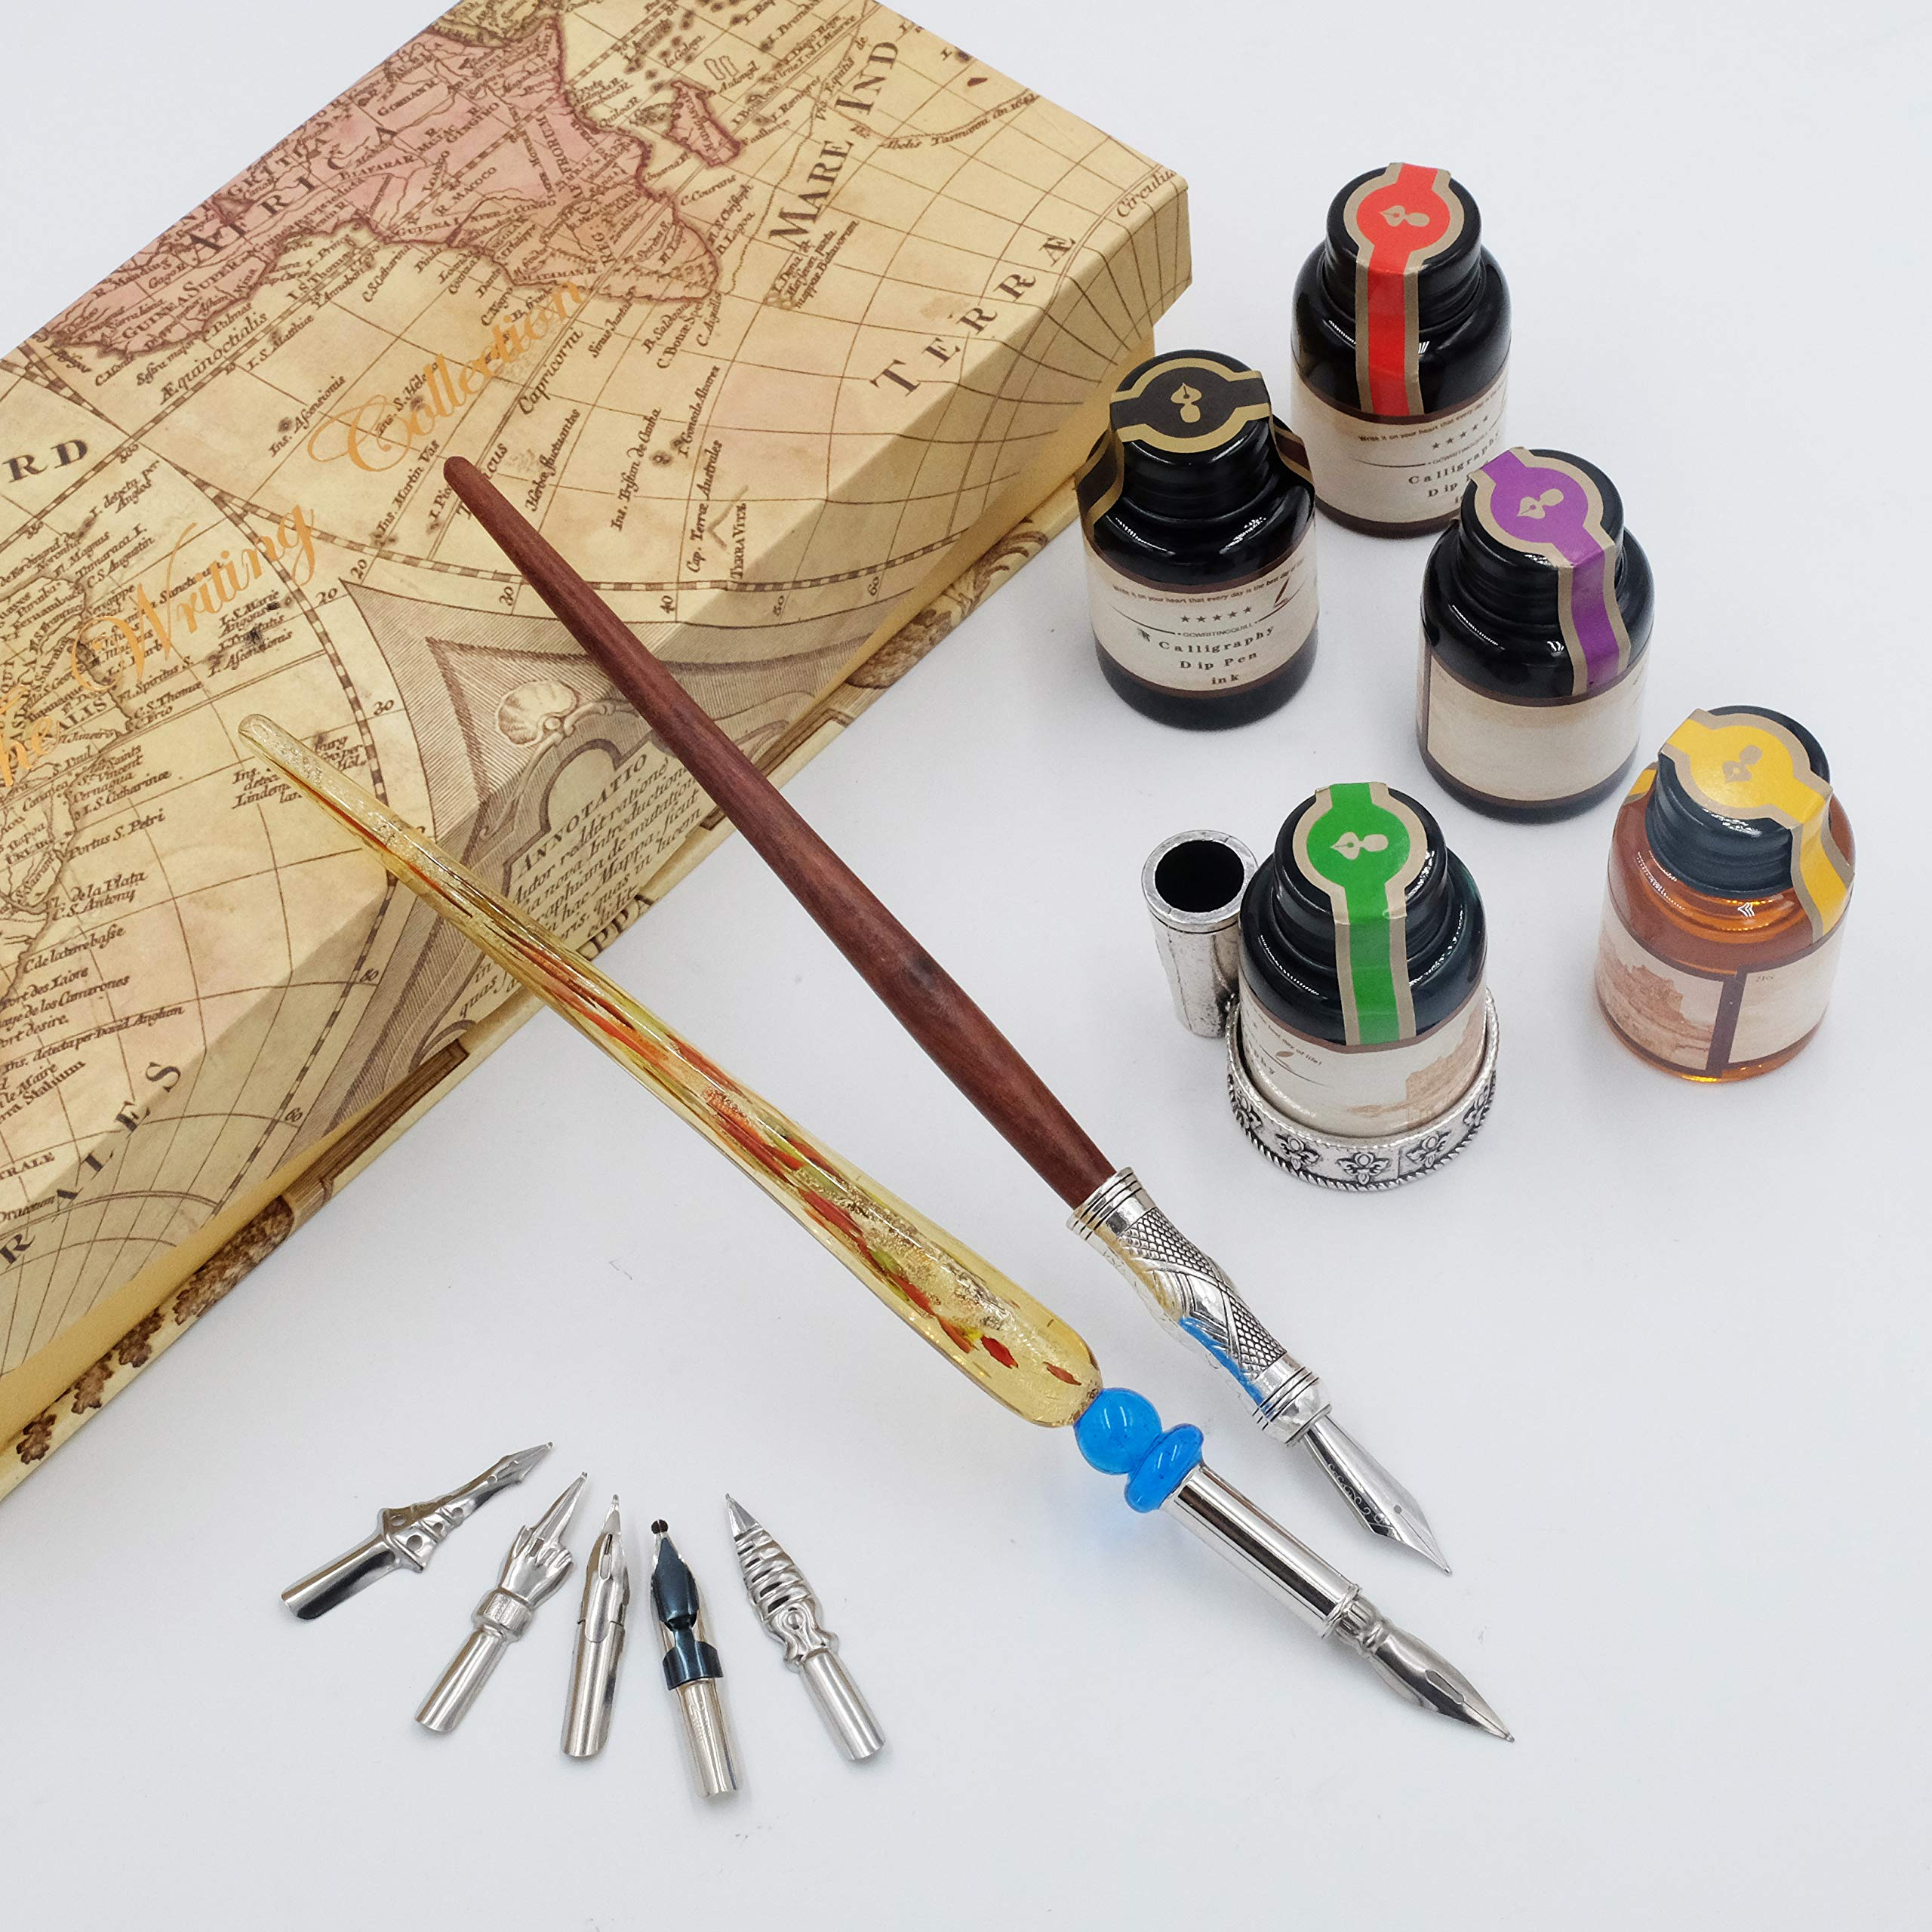 GC QUILL Calligraphy Pen Set-5 Bottle Ink-100% Hand Craft-Wood Pen Stem- Glass Pen Stem-Dip Pen with 7 Nibs&1 Pen Holder by GC QUILL (Image #5)